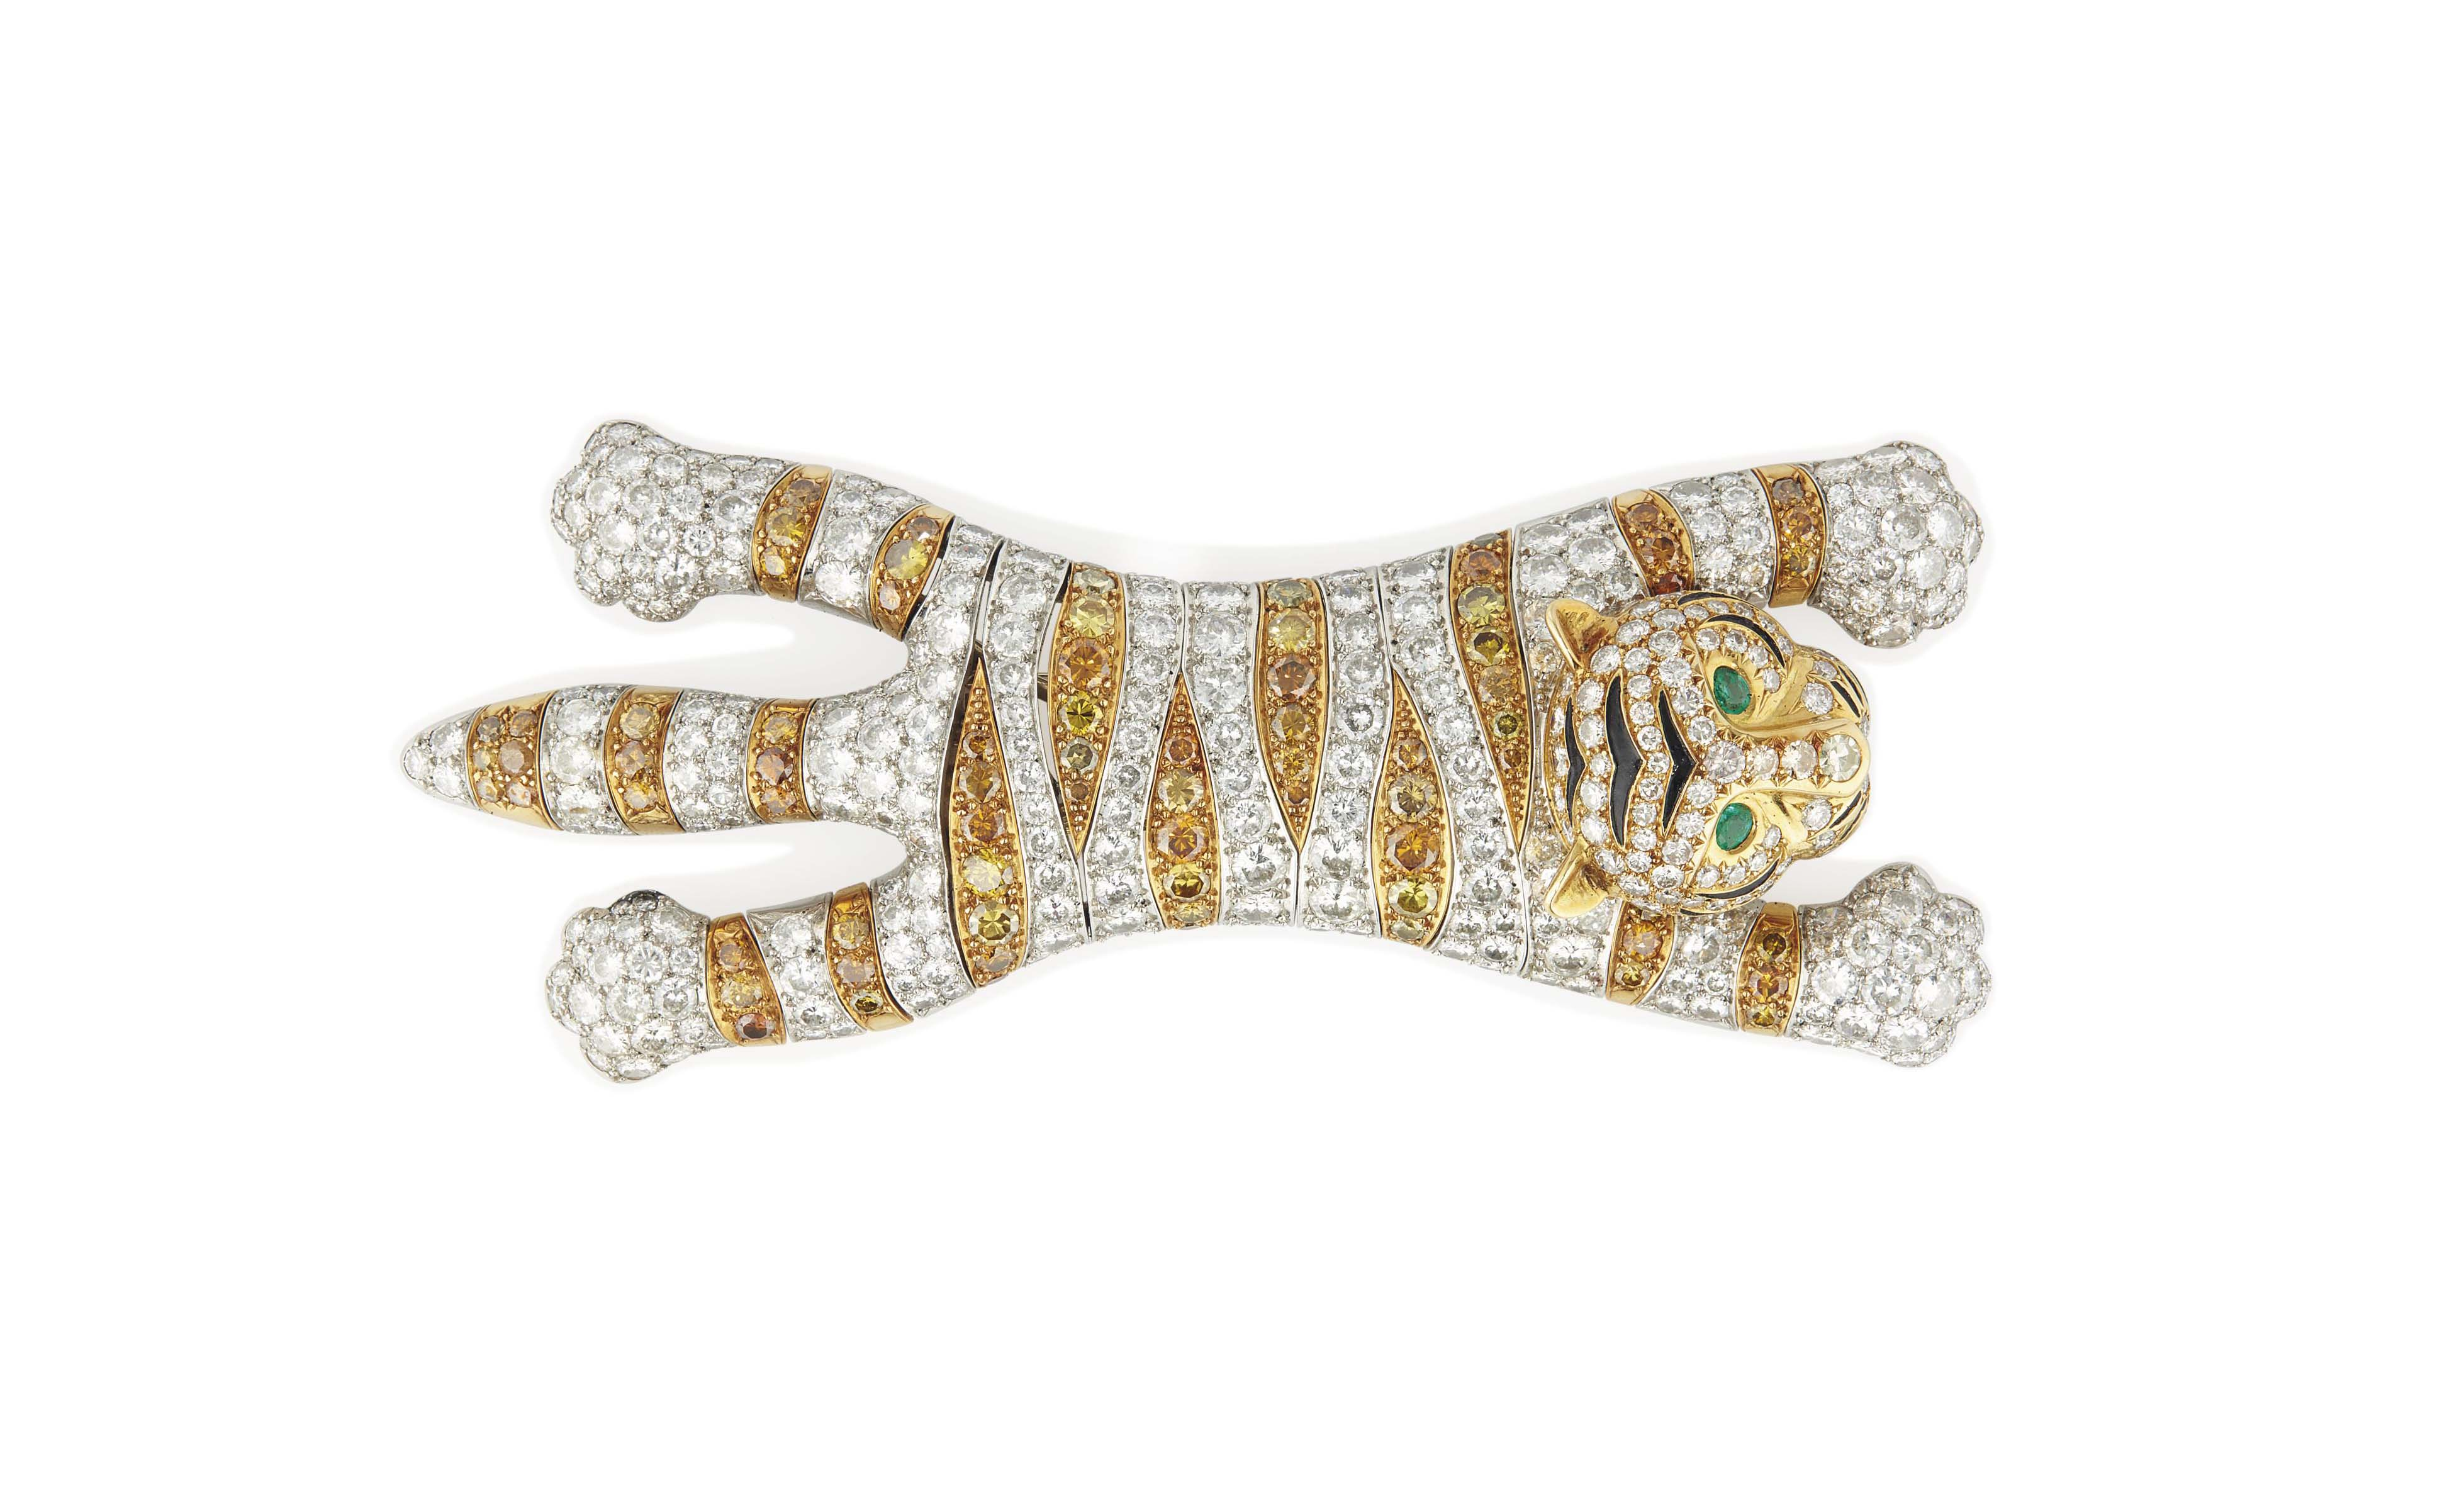 A DIAMOND, COLOURED DIAMOND, EMERALD AND ENAMEL 'TIGER' SHOULDER BROOCH, BY RENÉ BOIVIN